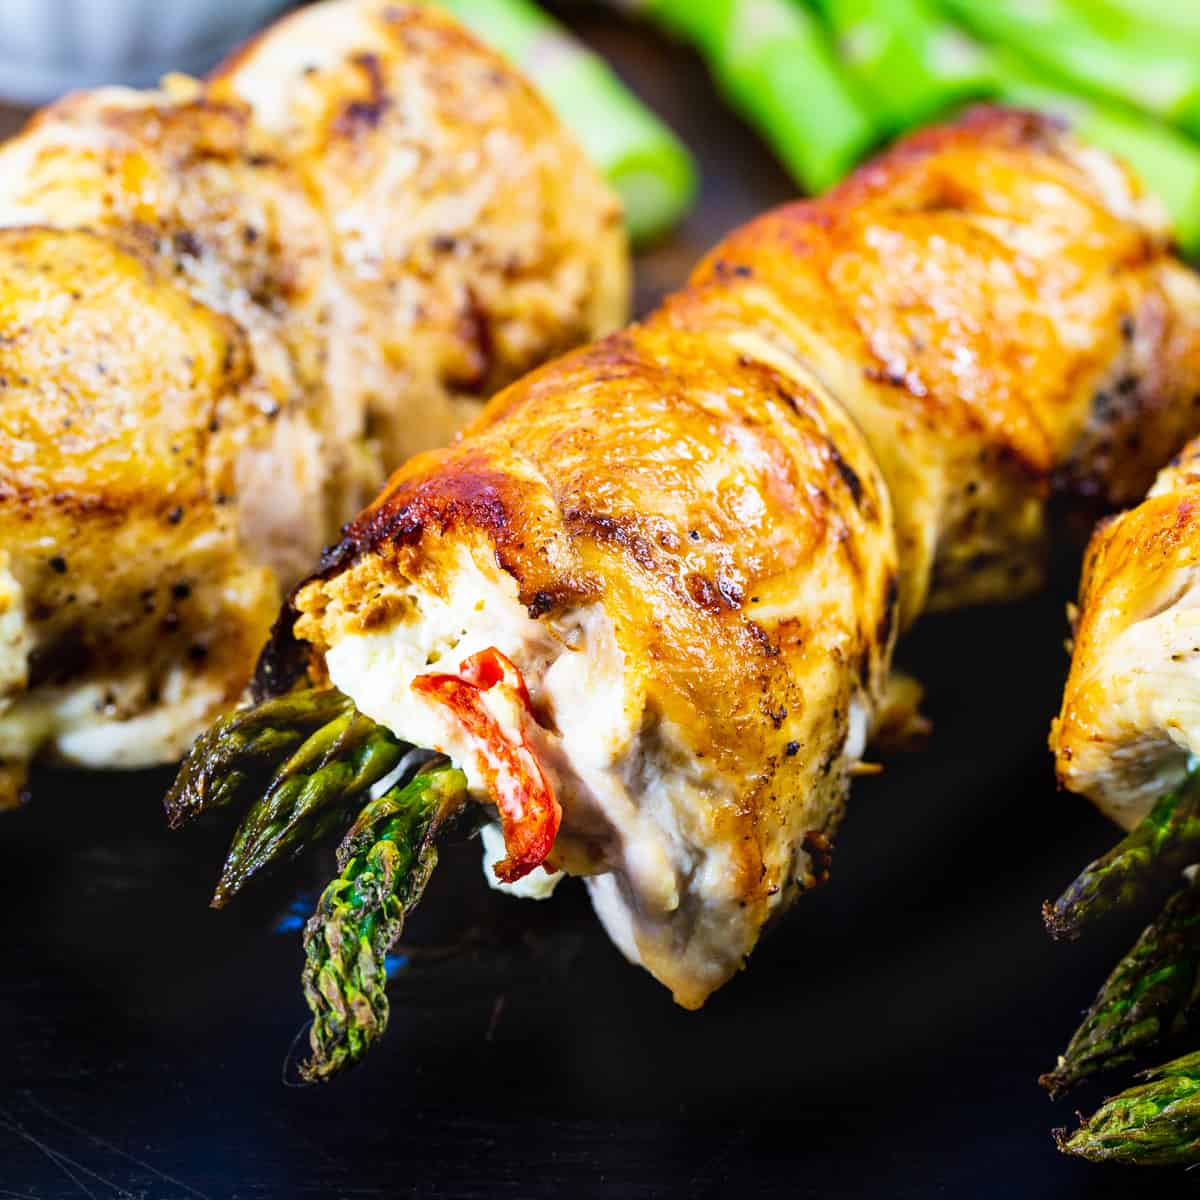 Chicken Asparagus and Goat Cheese Roll-ups on a cutting board.